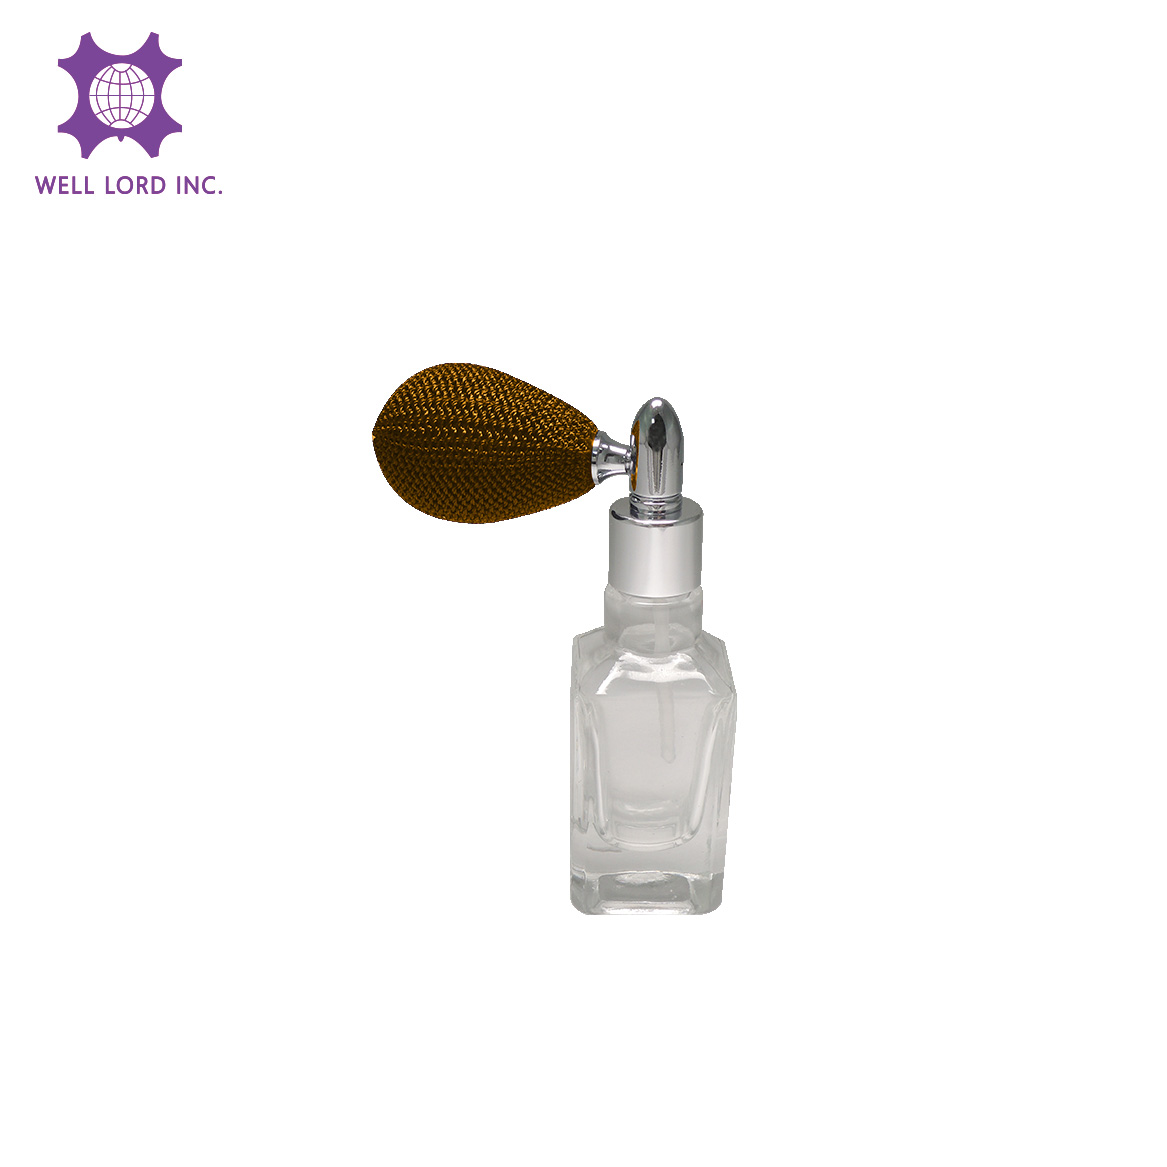 2020 New design product 13ml sienna bulb clear glass perfume bottle wholesale